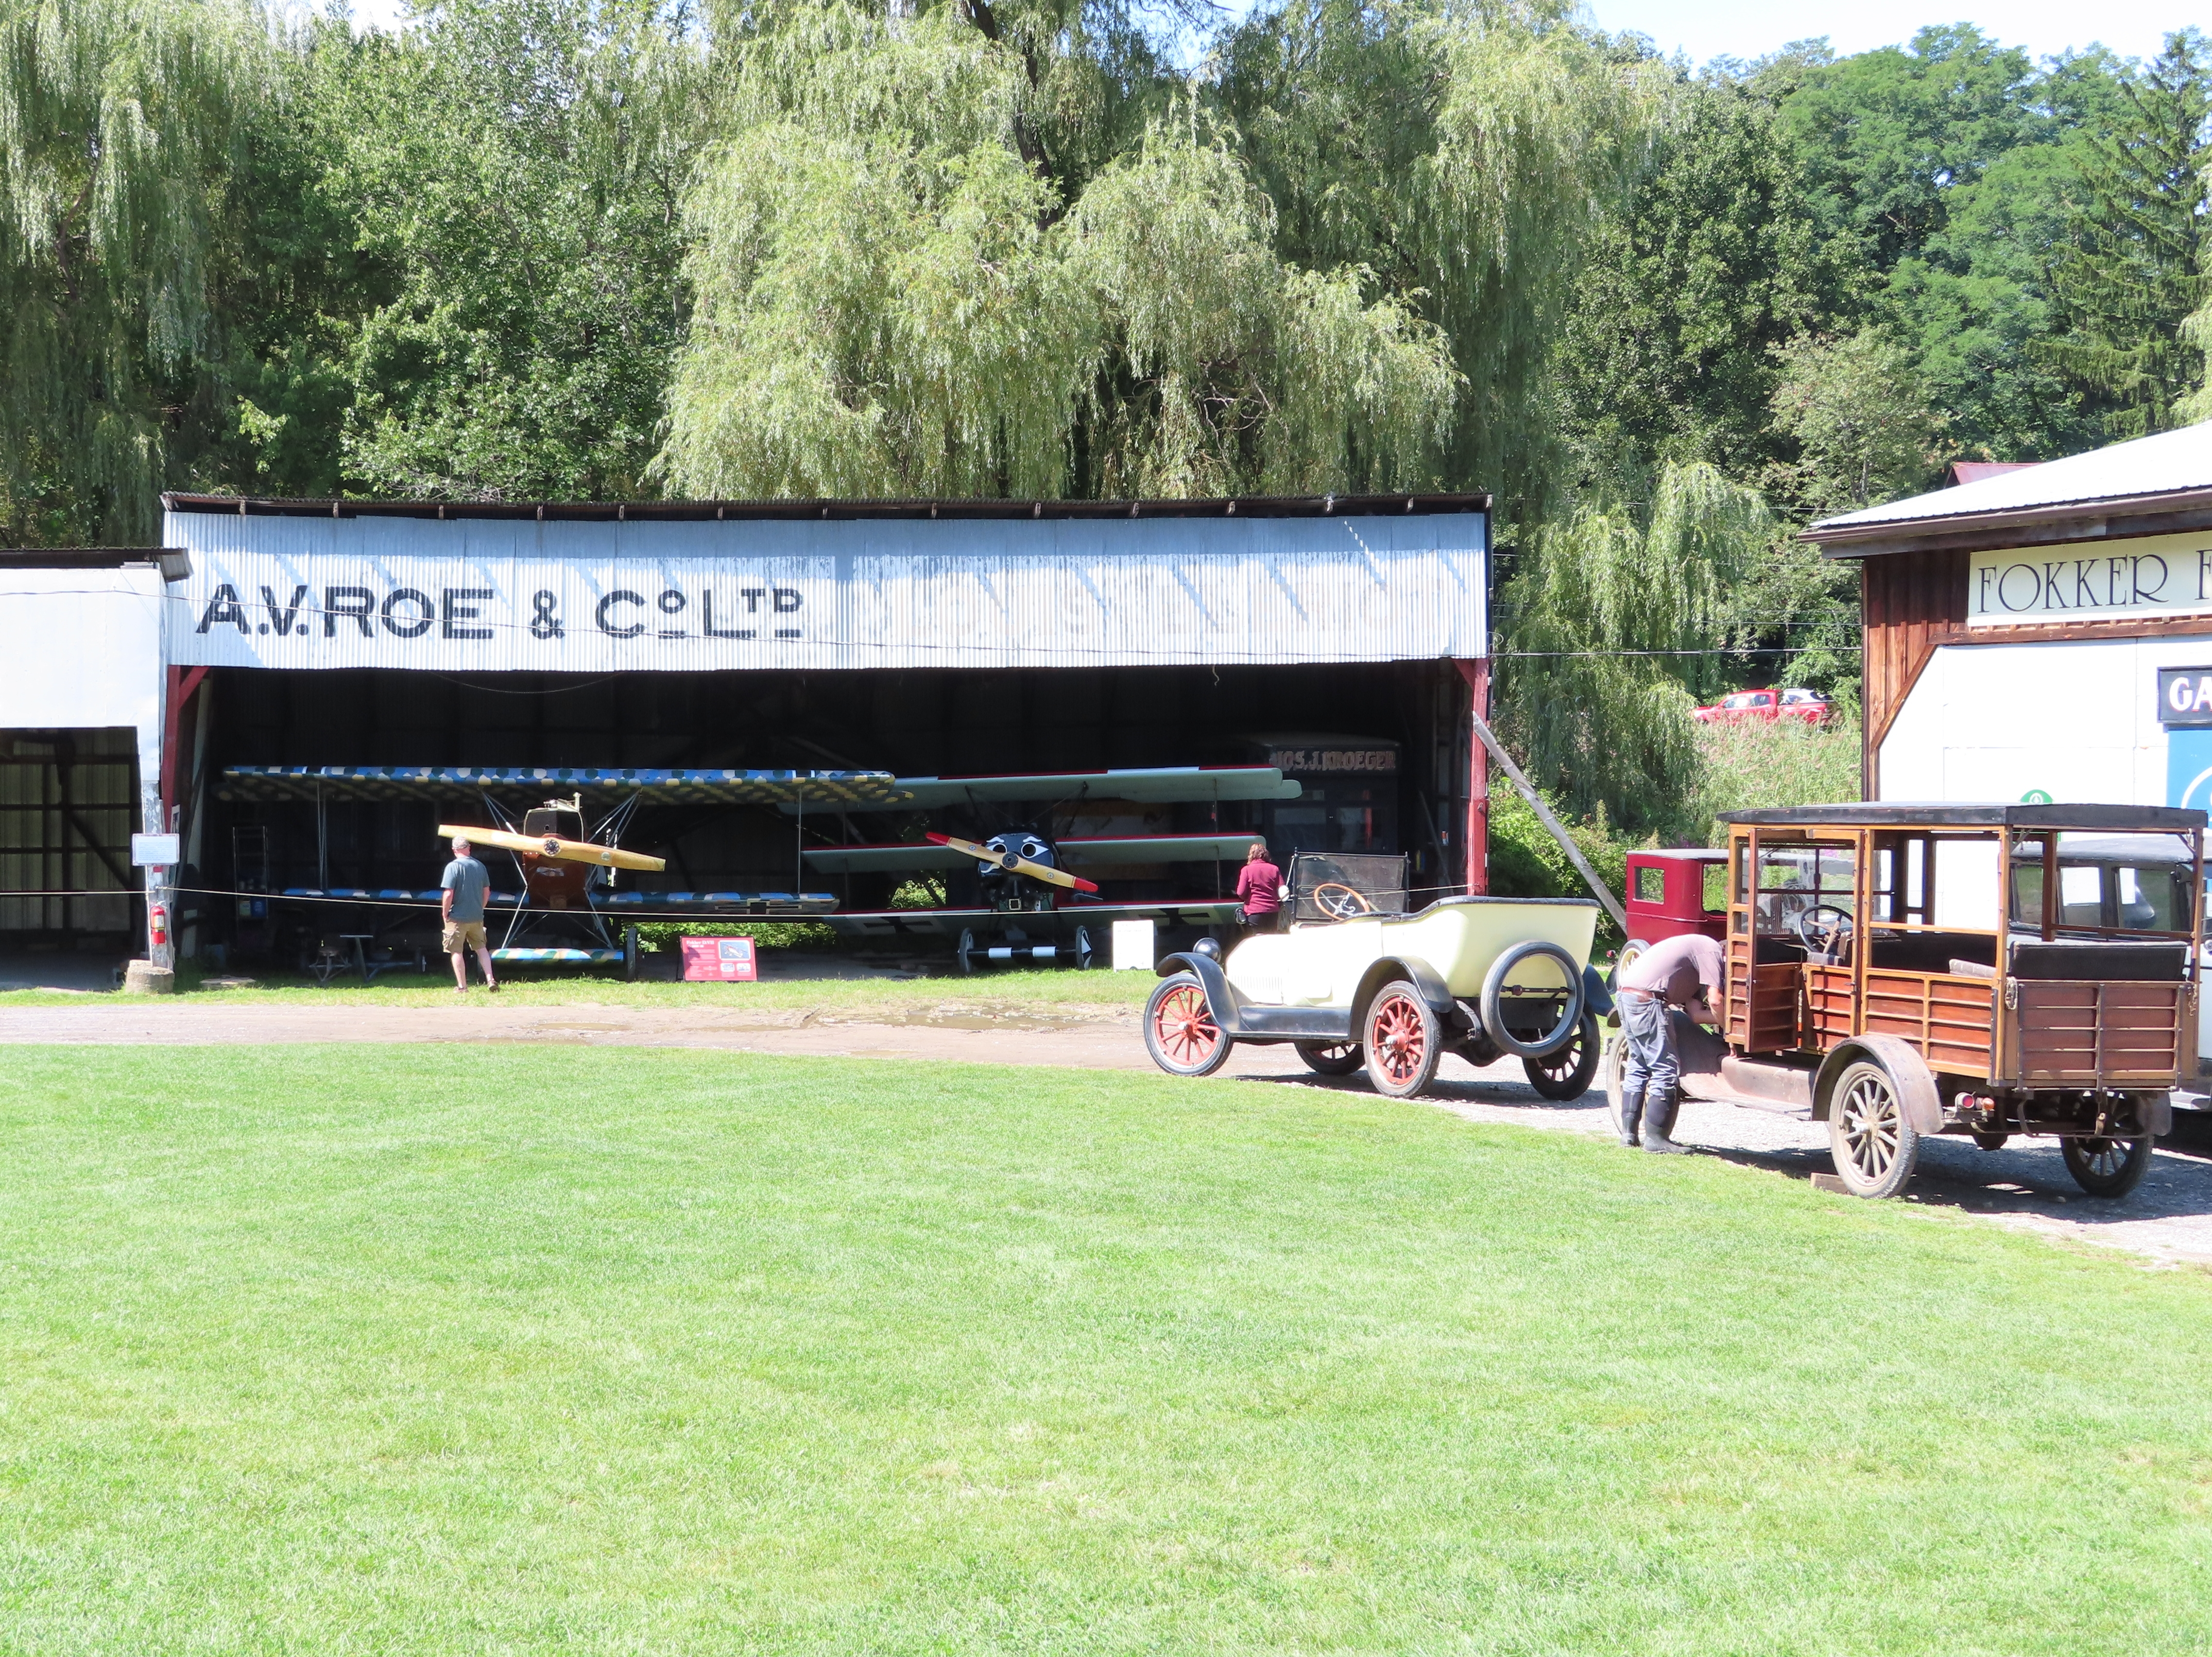 Hangar and Antique Cars at Old Rhinebeck Aerodrome